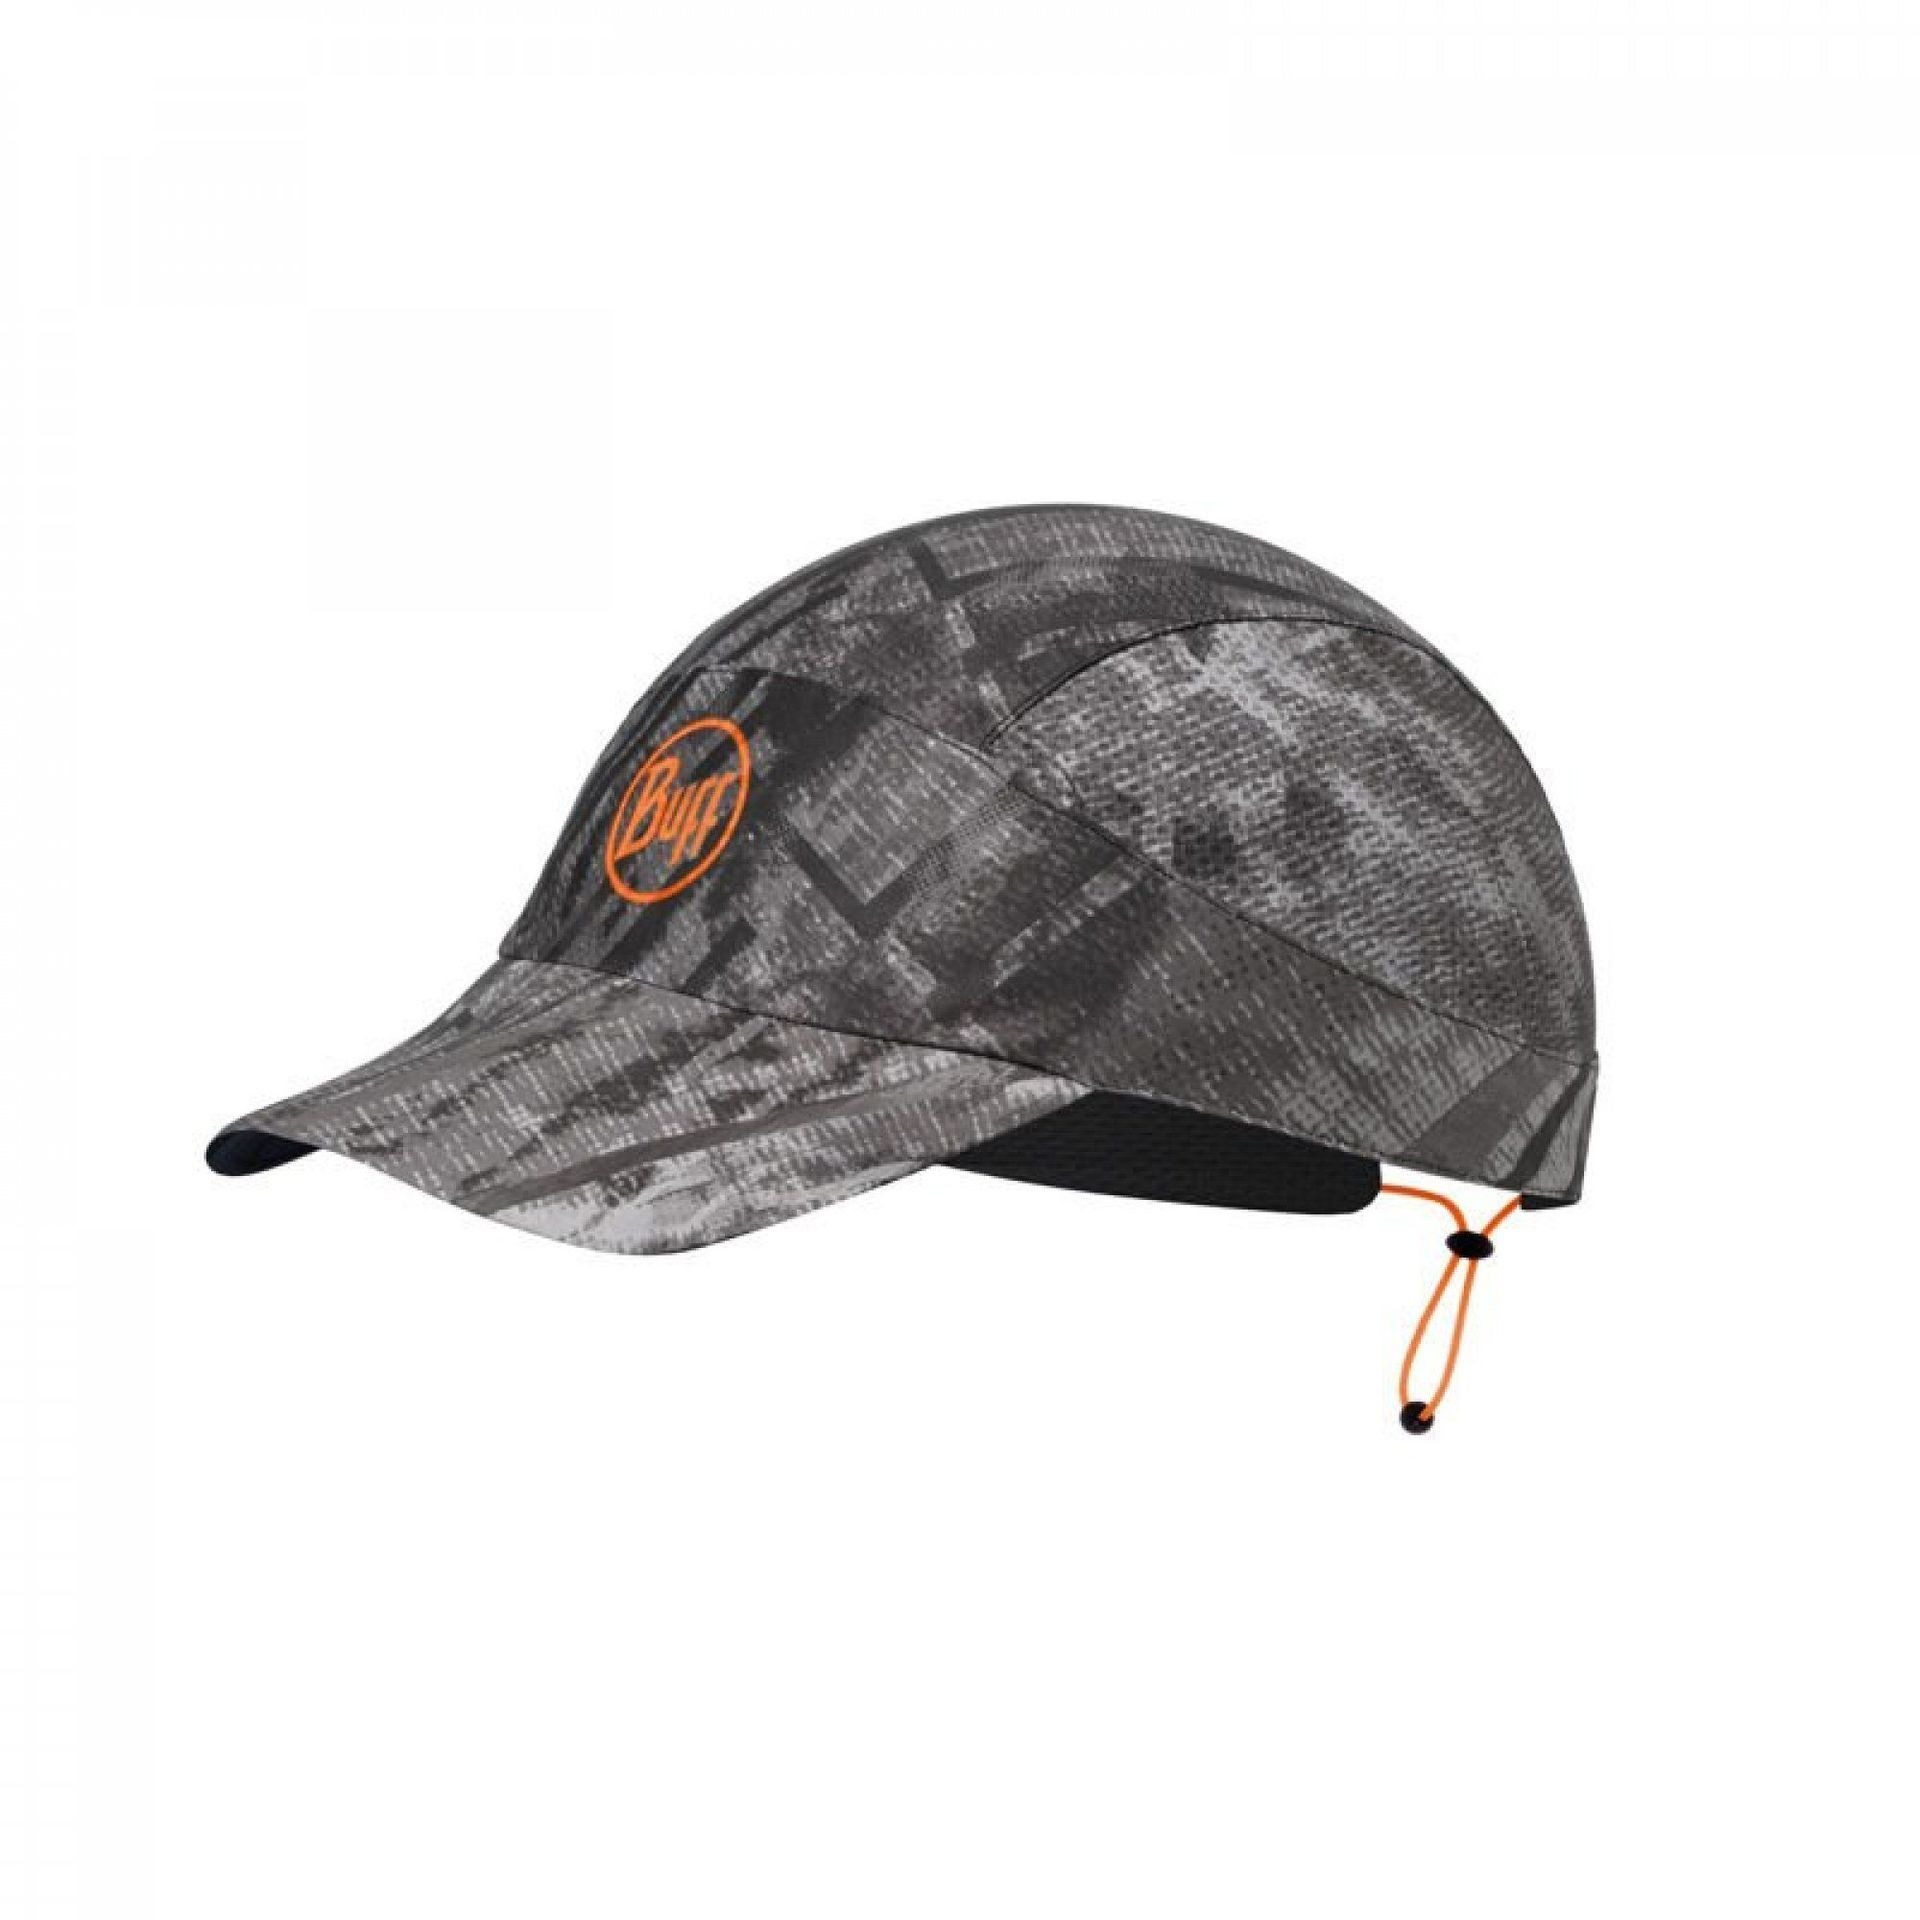 PACK RUN CAP R-CITY JUNGLE GREY 1